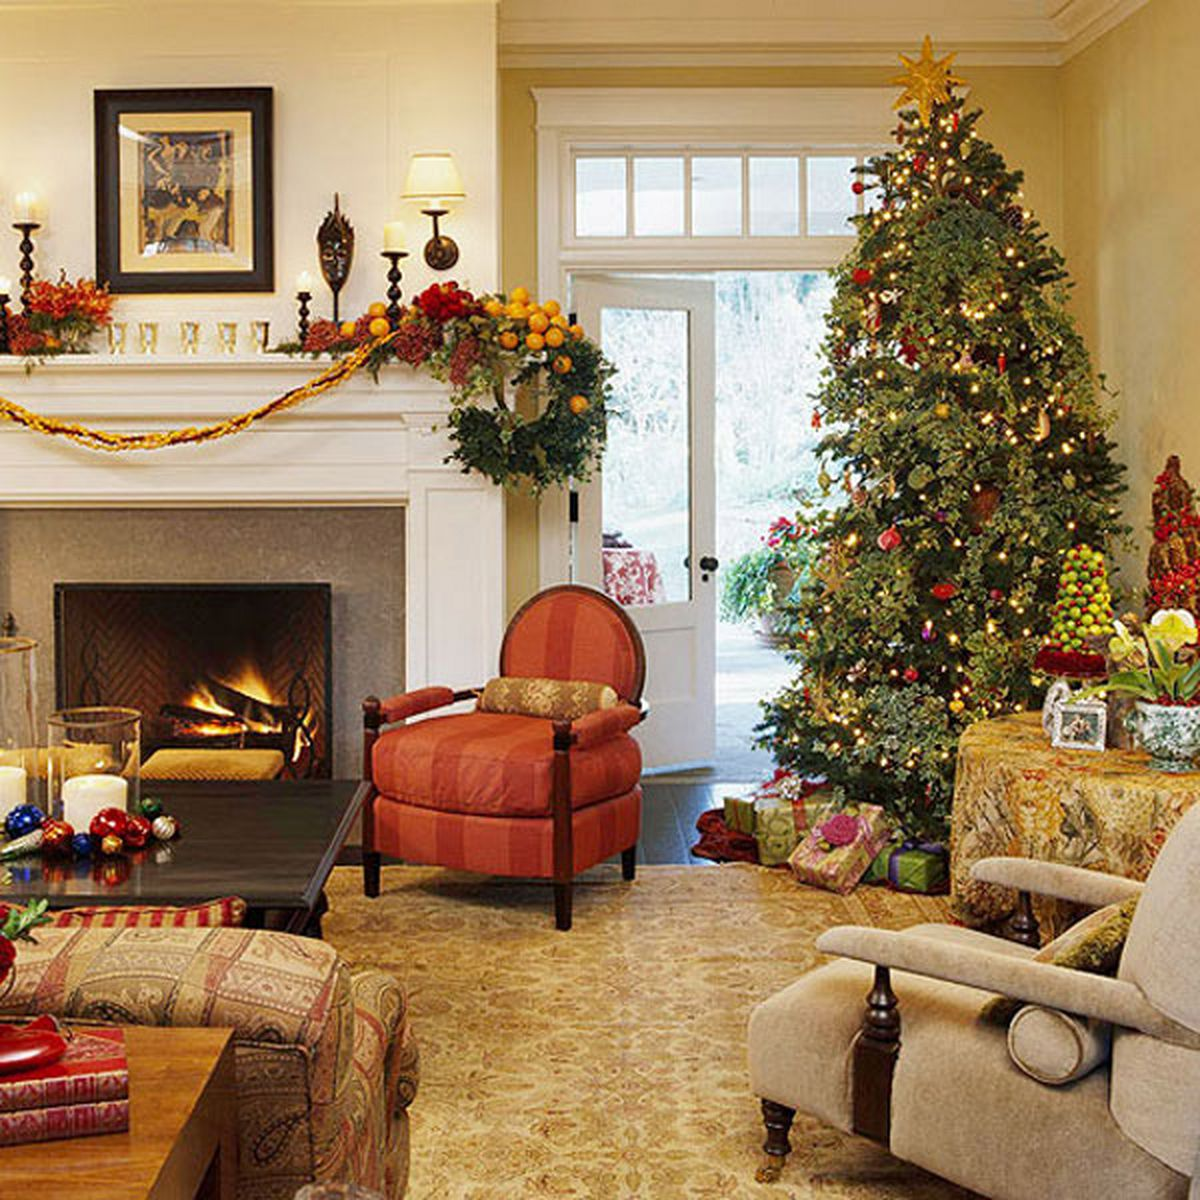 Magical christmas living room ideas - Christmas decorations for the living room ...